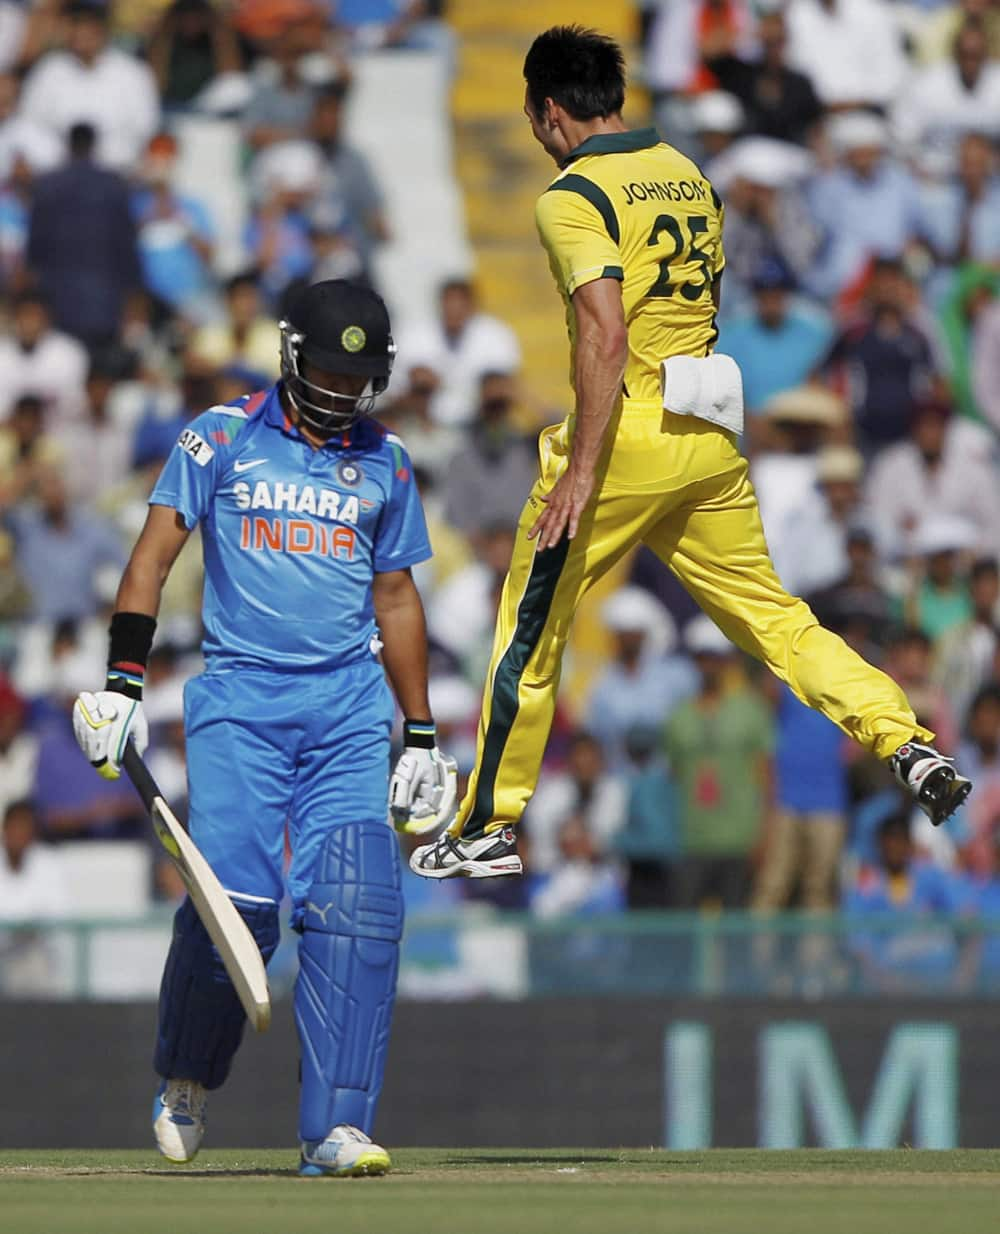 M Johnson exults after taking wicket of Indian batsman Yuvraj Singh (L) during their 3rd ODI cricket match at PCA stadium in Mohali.